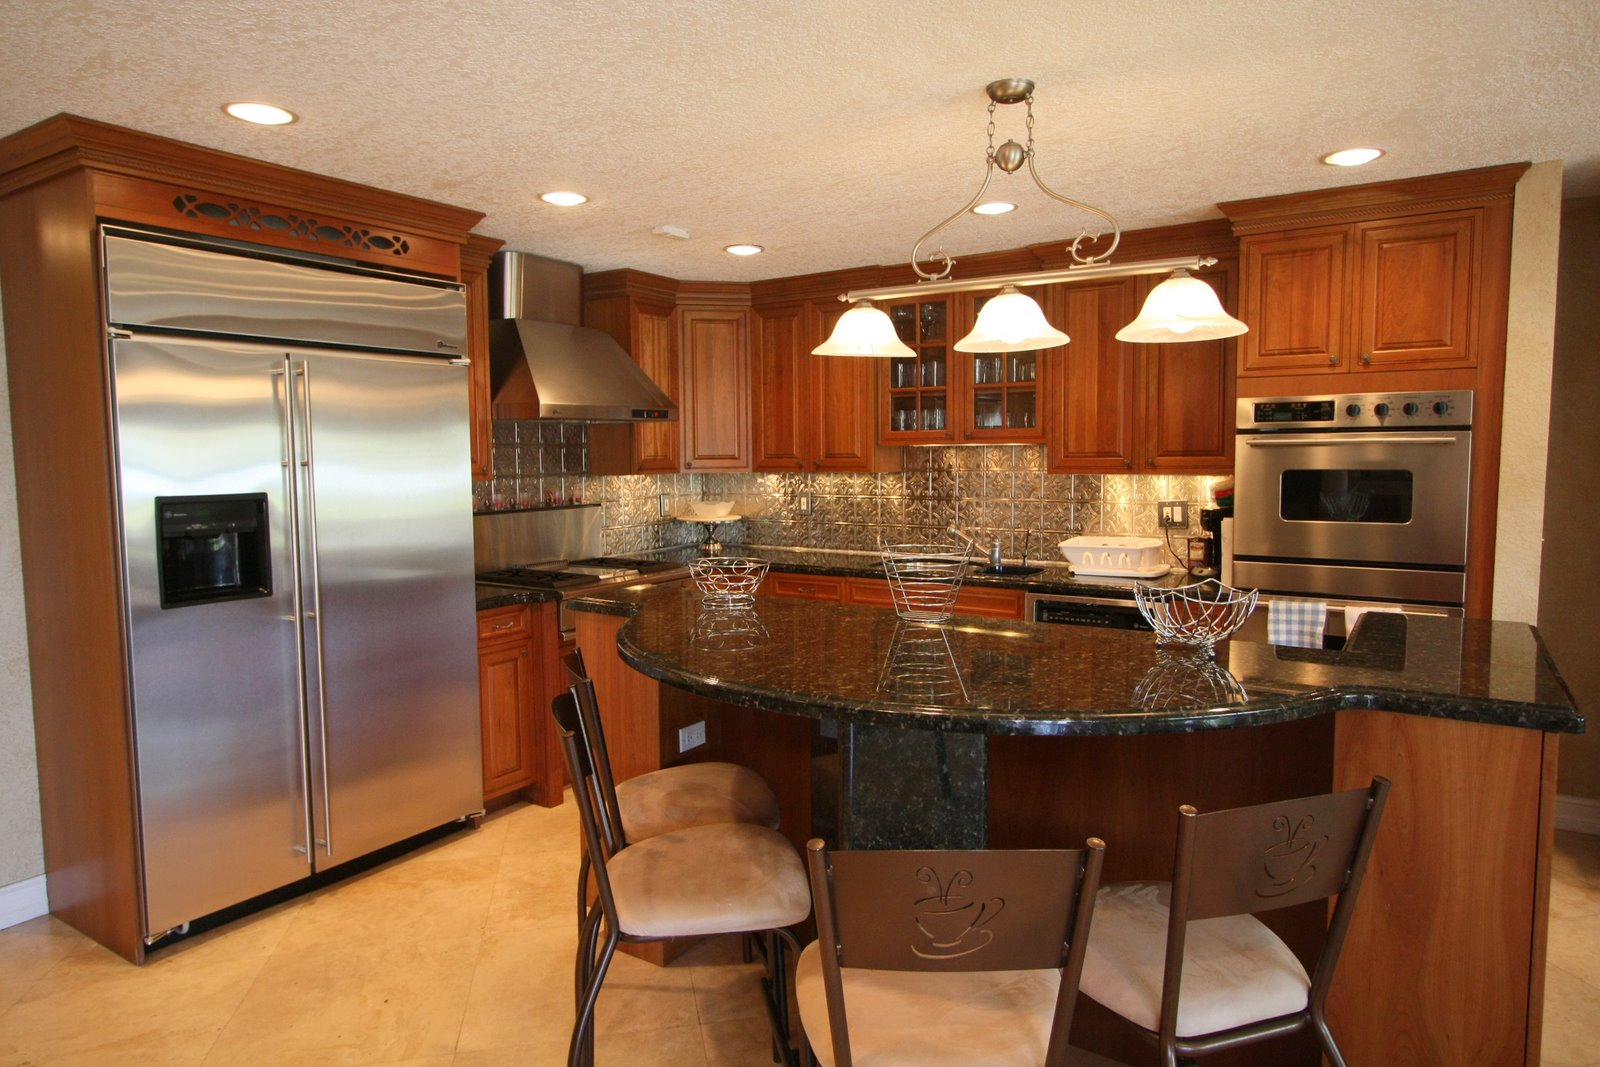 Ideas For Remodeling A Kitchen With An Island